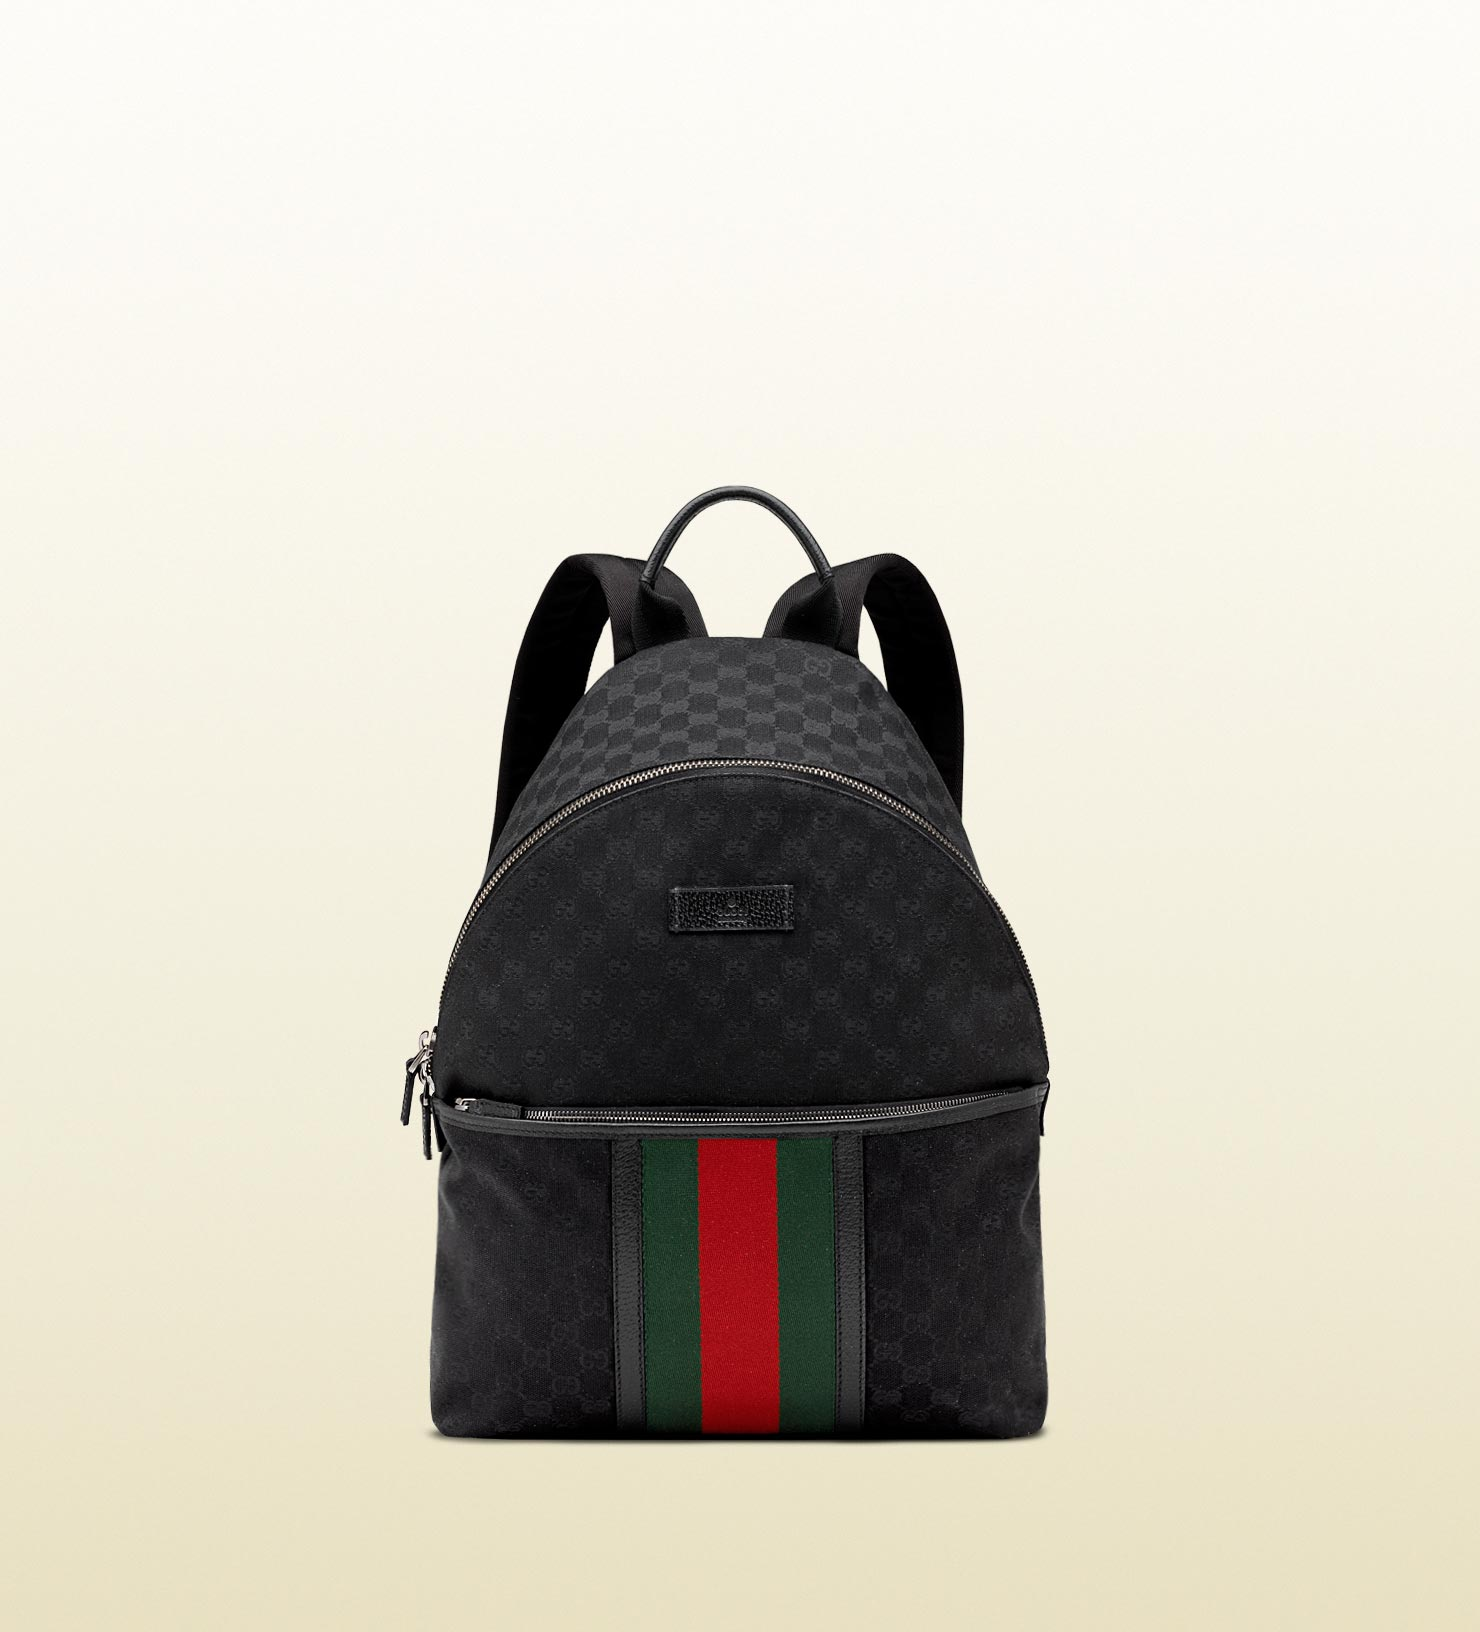 9e2bf3377 Gucci Original Gg Canvas Backpack in Black for Men - Lyst